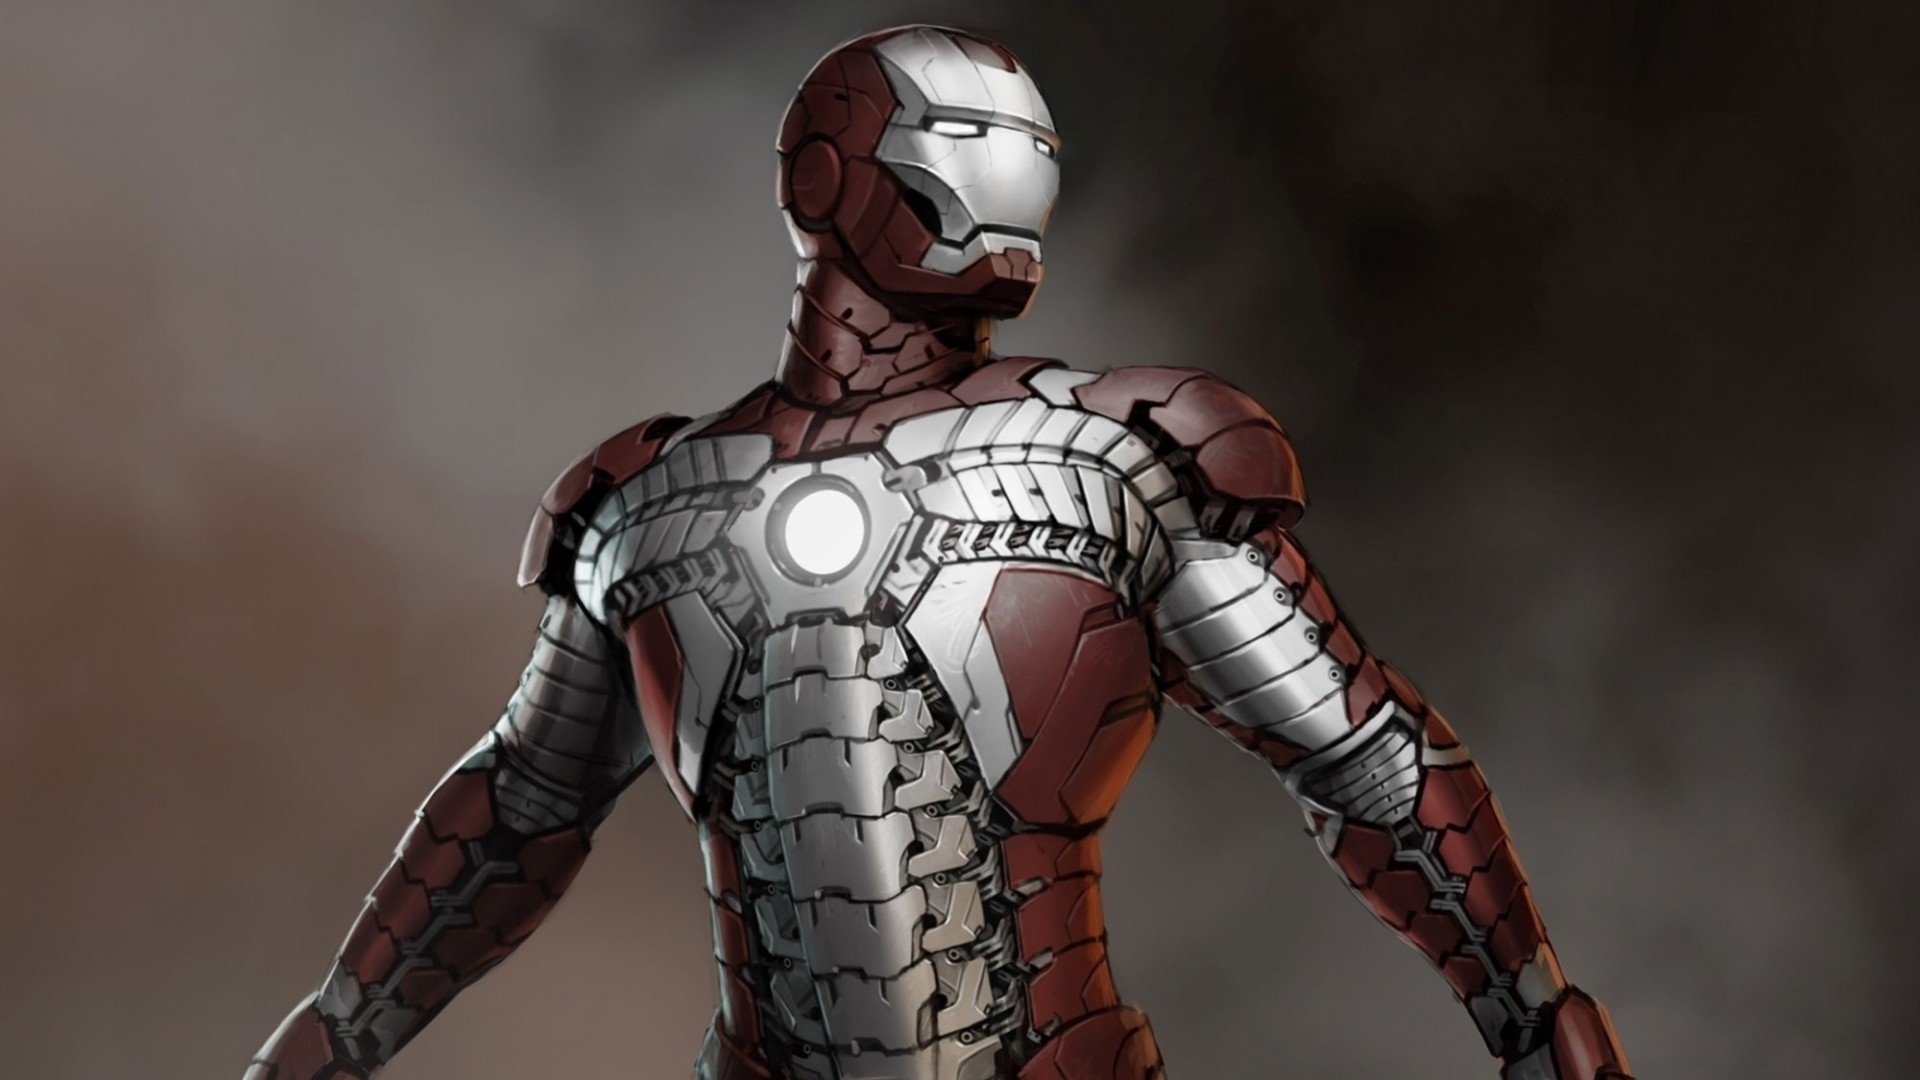 1920x1080  Wallpaper iron man, concept art, artwork, marvel comics